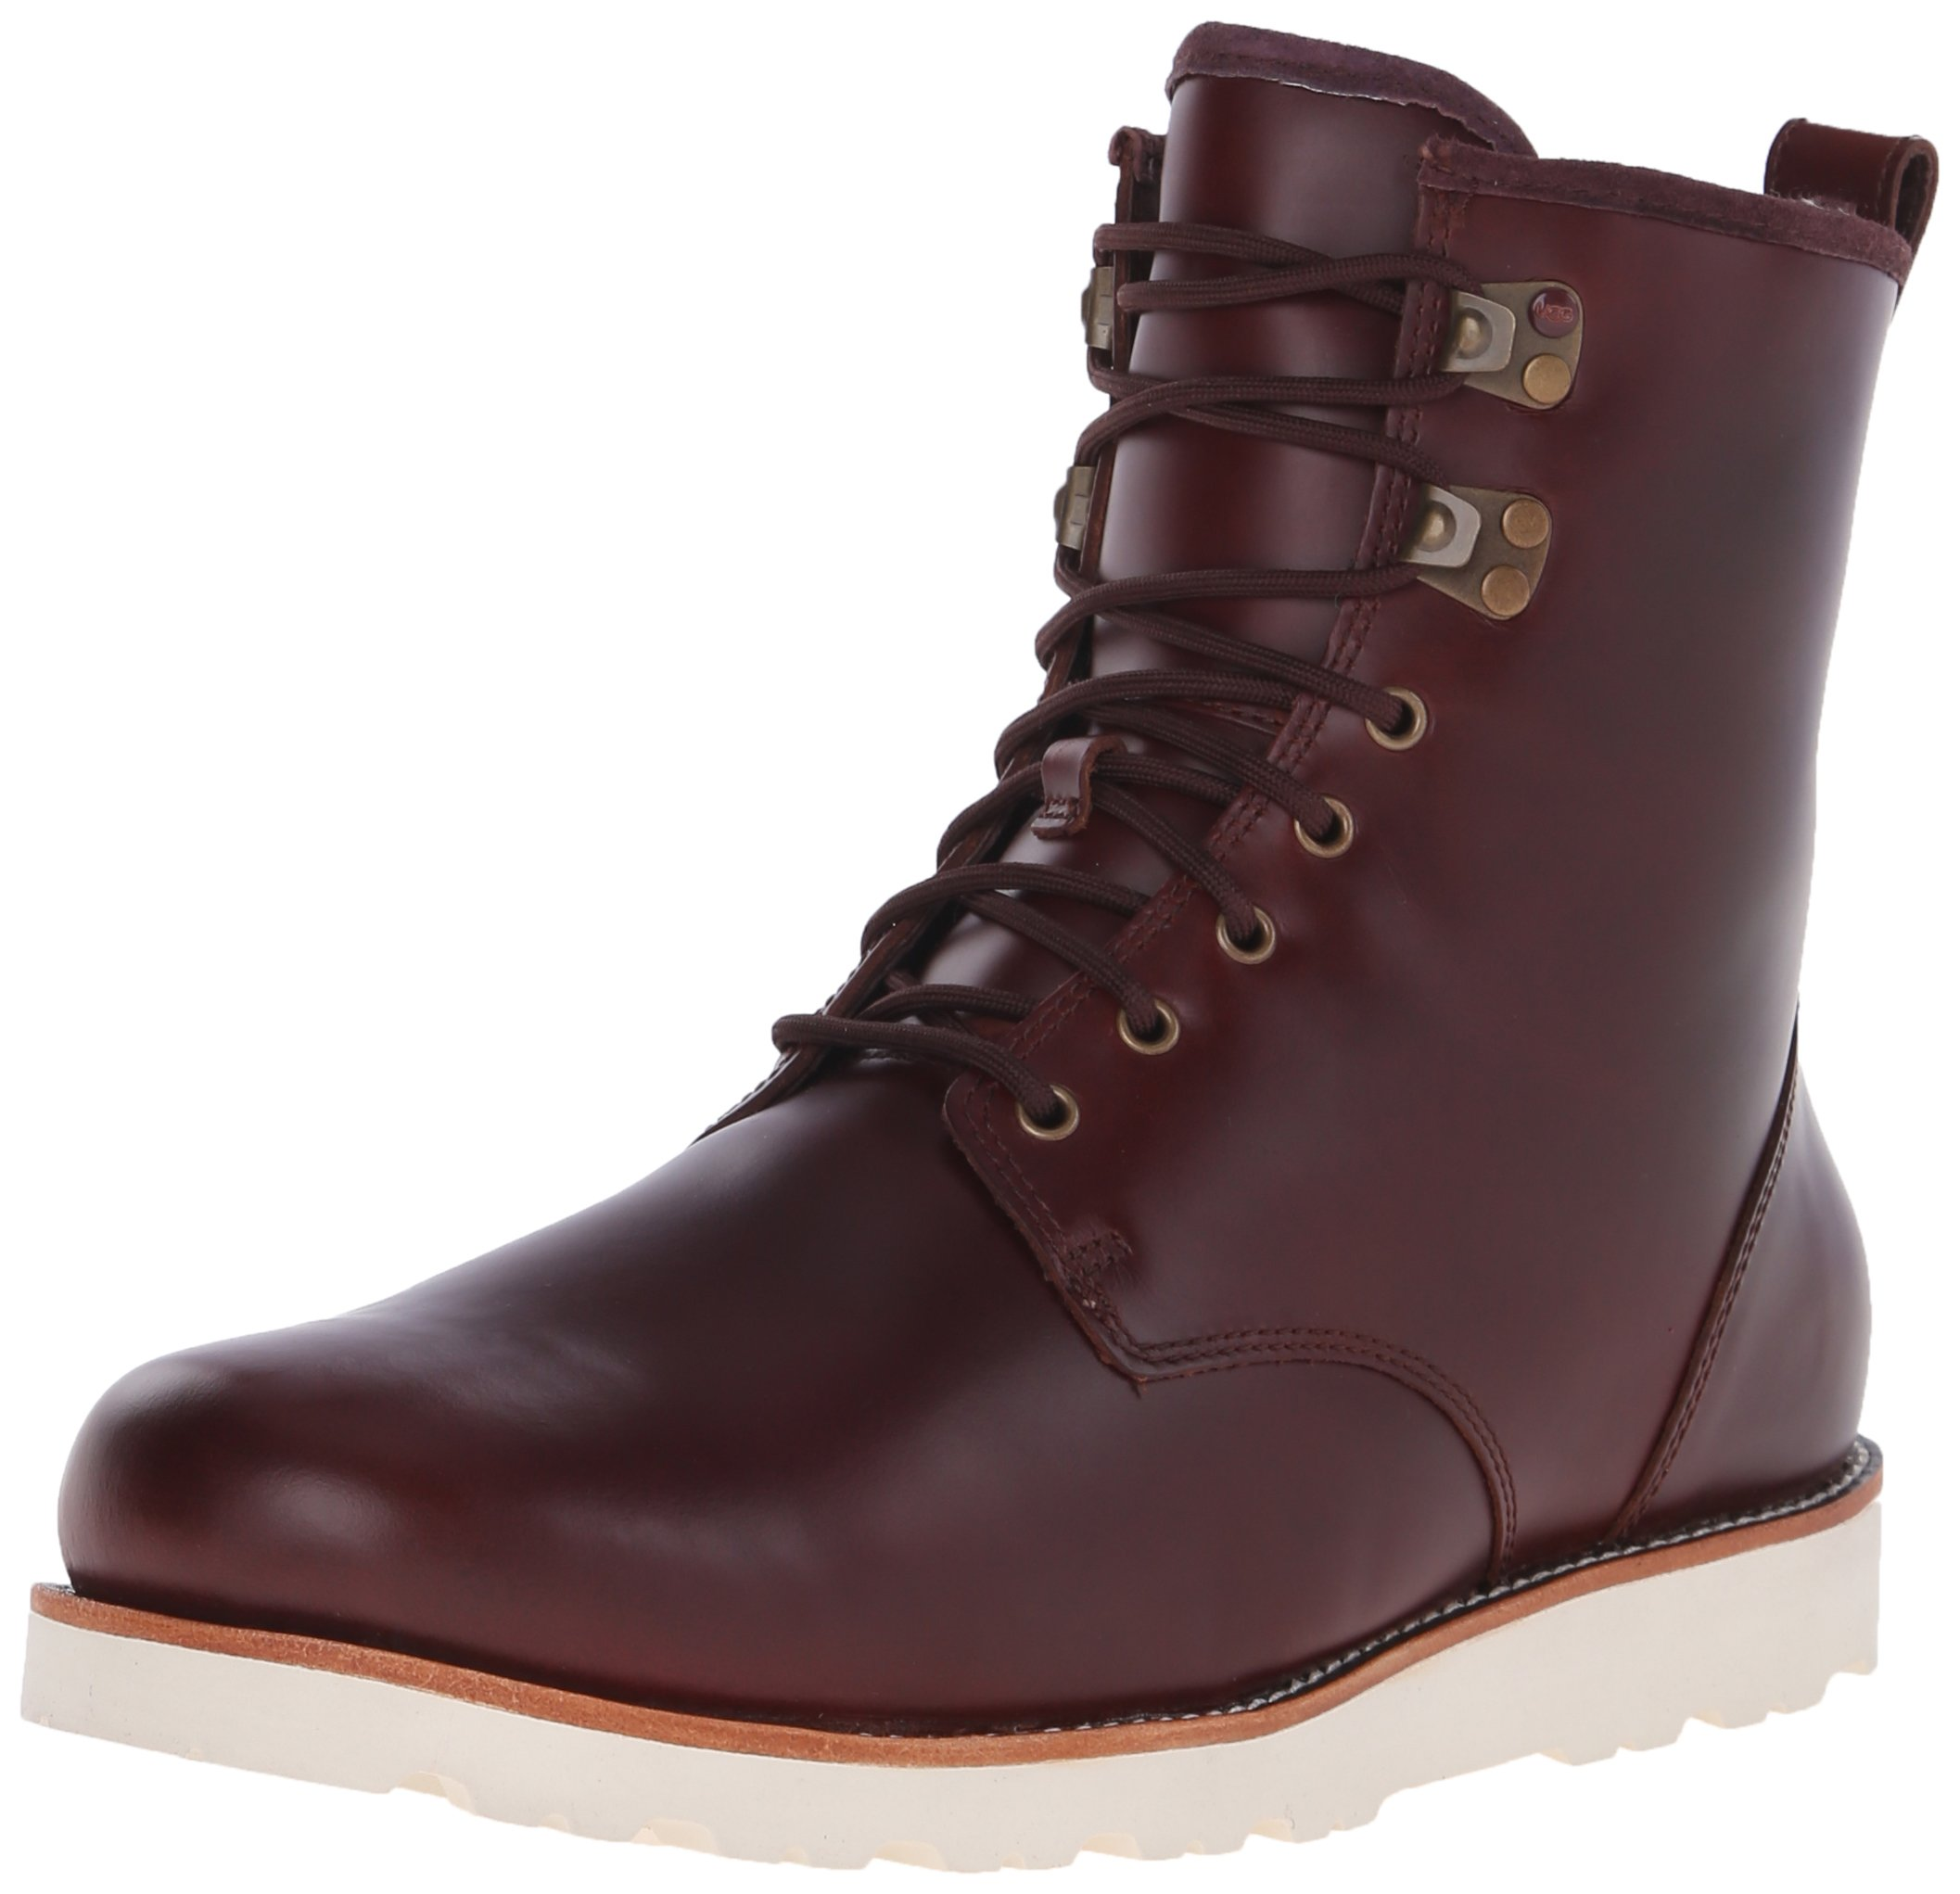 UGG Men's Hannen TL Winter Boot, Cordovan, 8 M US